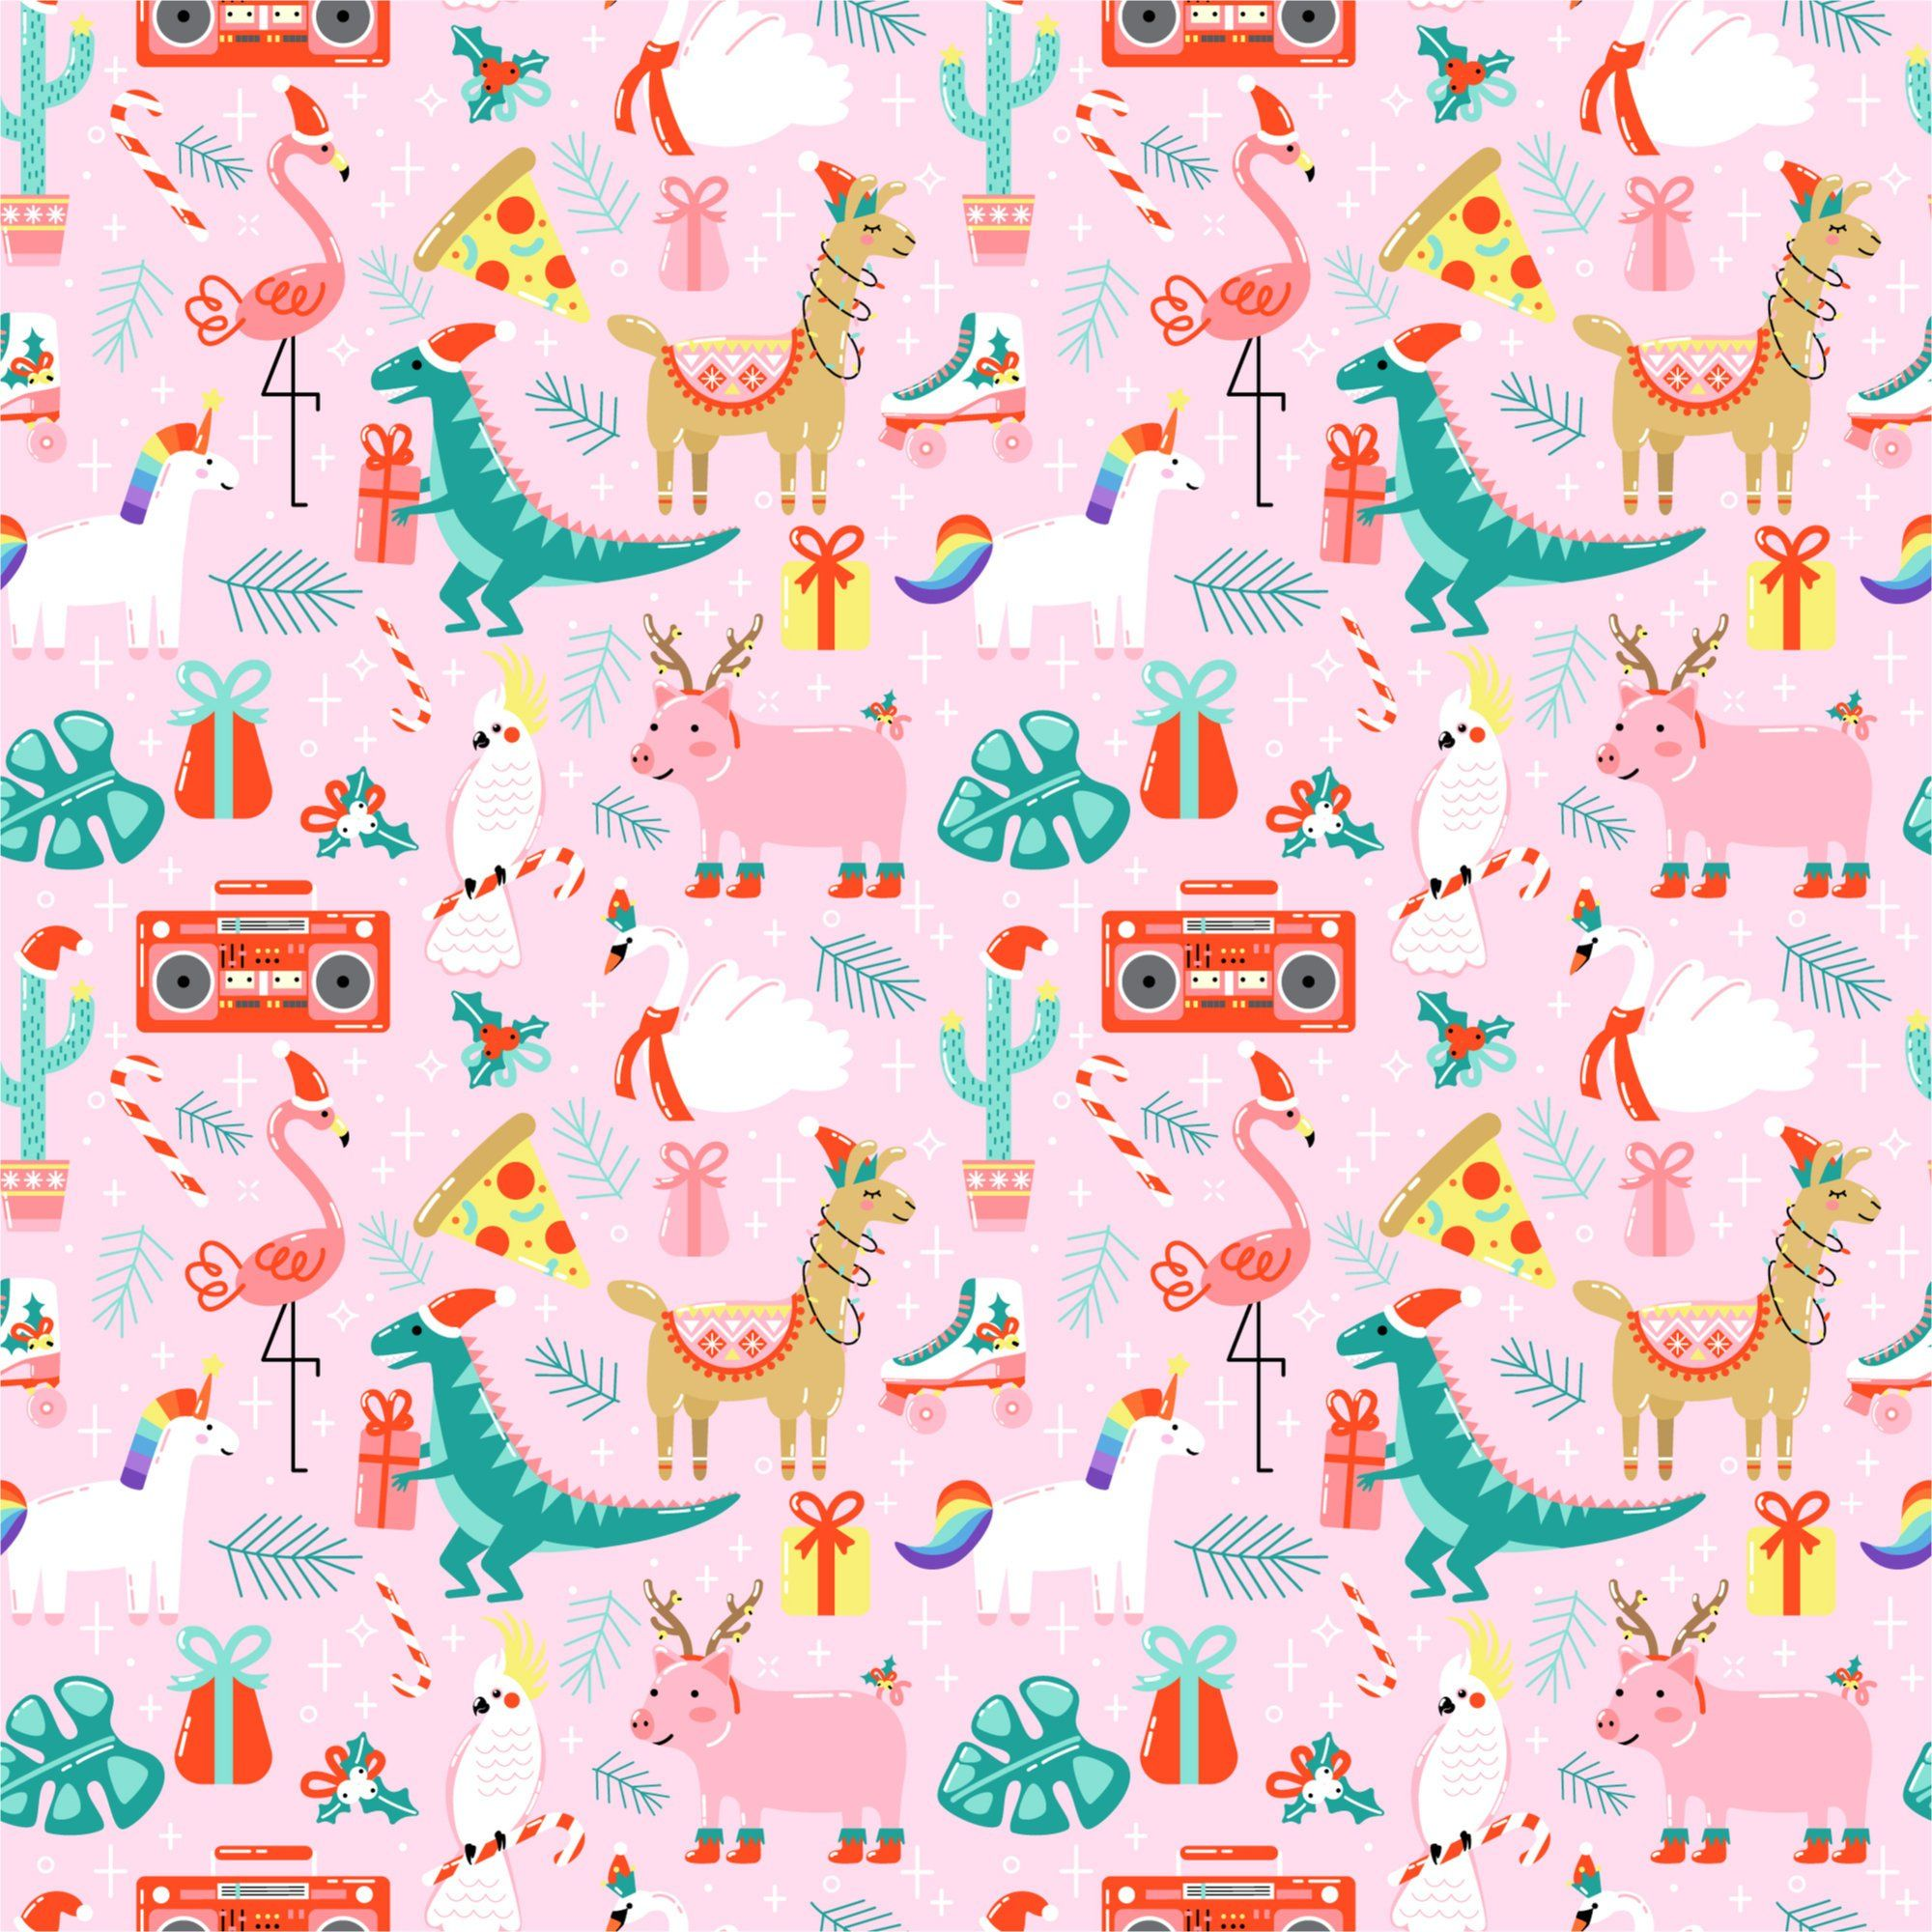 Wrapping Paper Crazy Pink Christmas By Urbanpapernv On Etsy Pink Christmas Wrapping Paper Pink Christmas Gifts Pink Christmas Background